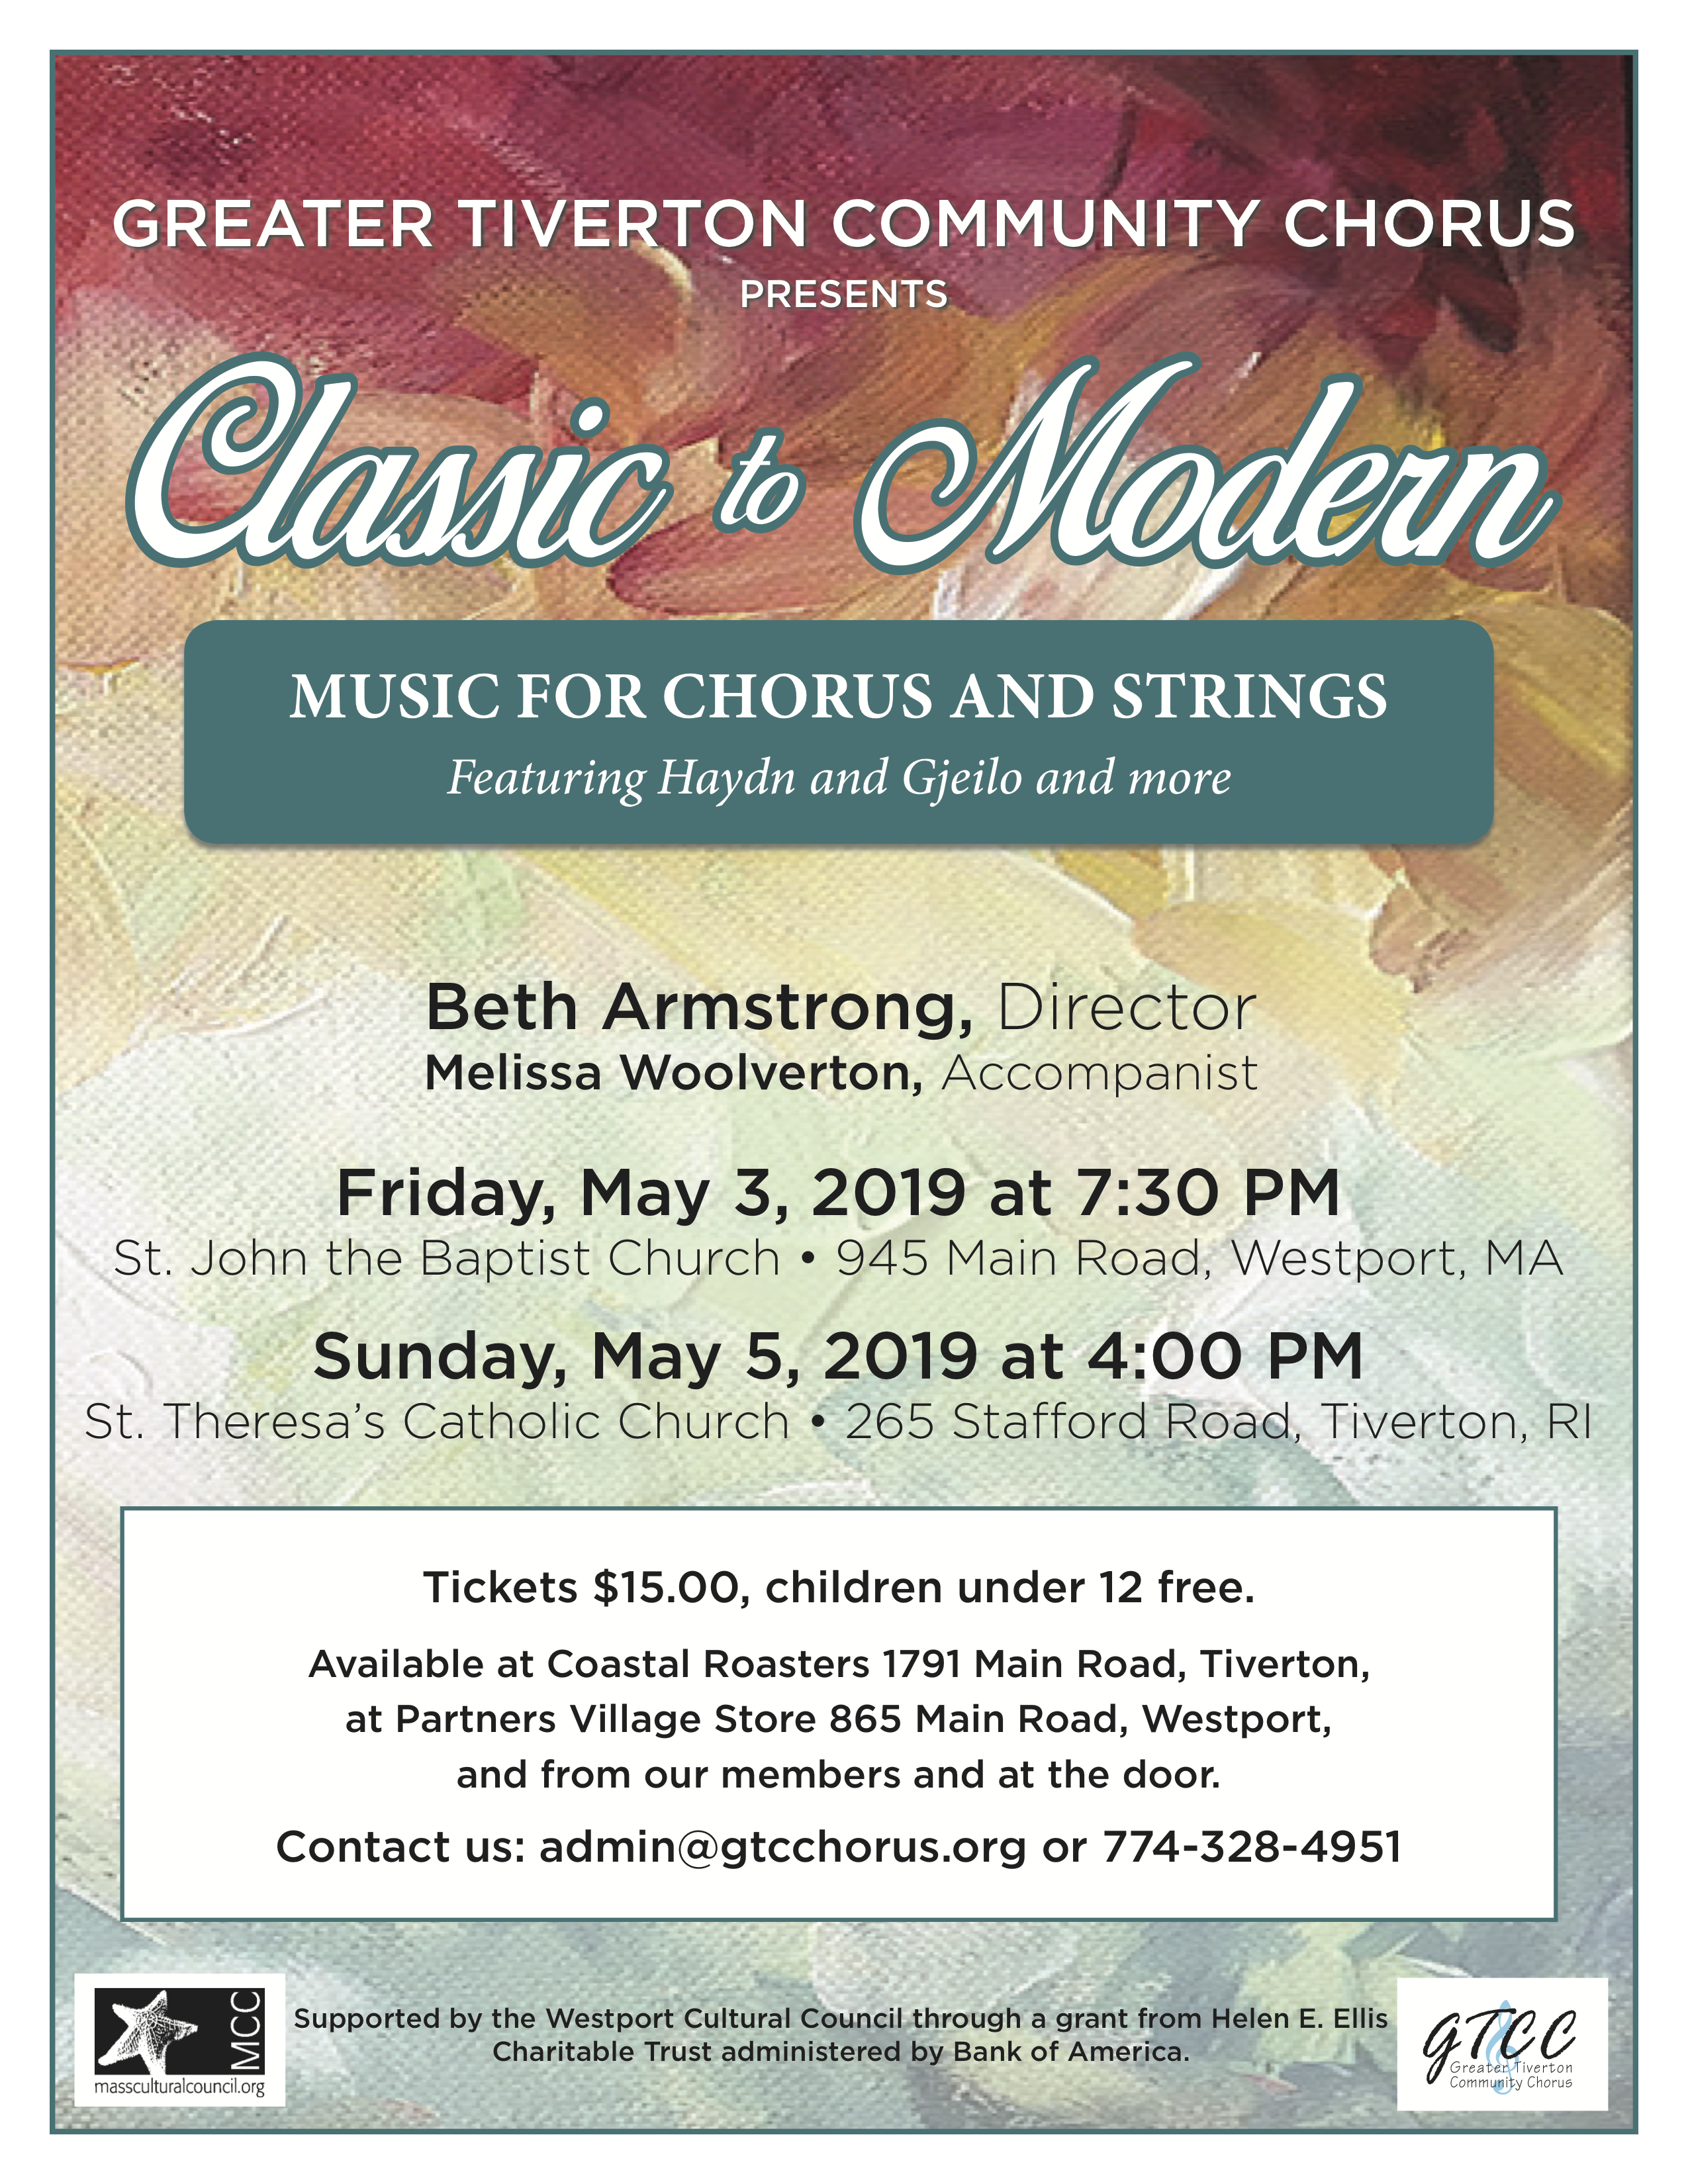 Poster for the Greater Tiverton Community Chorus Spring 2019 Concert: Classic to Modern